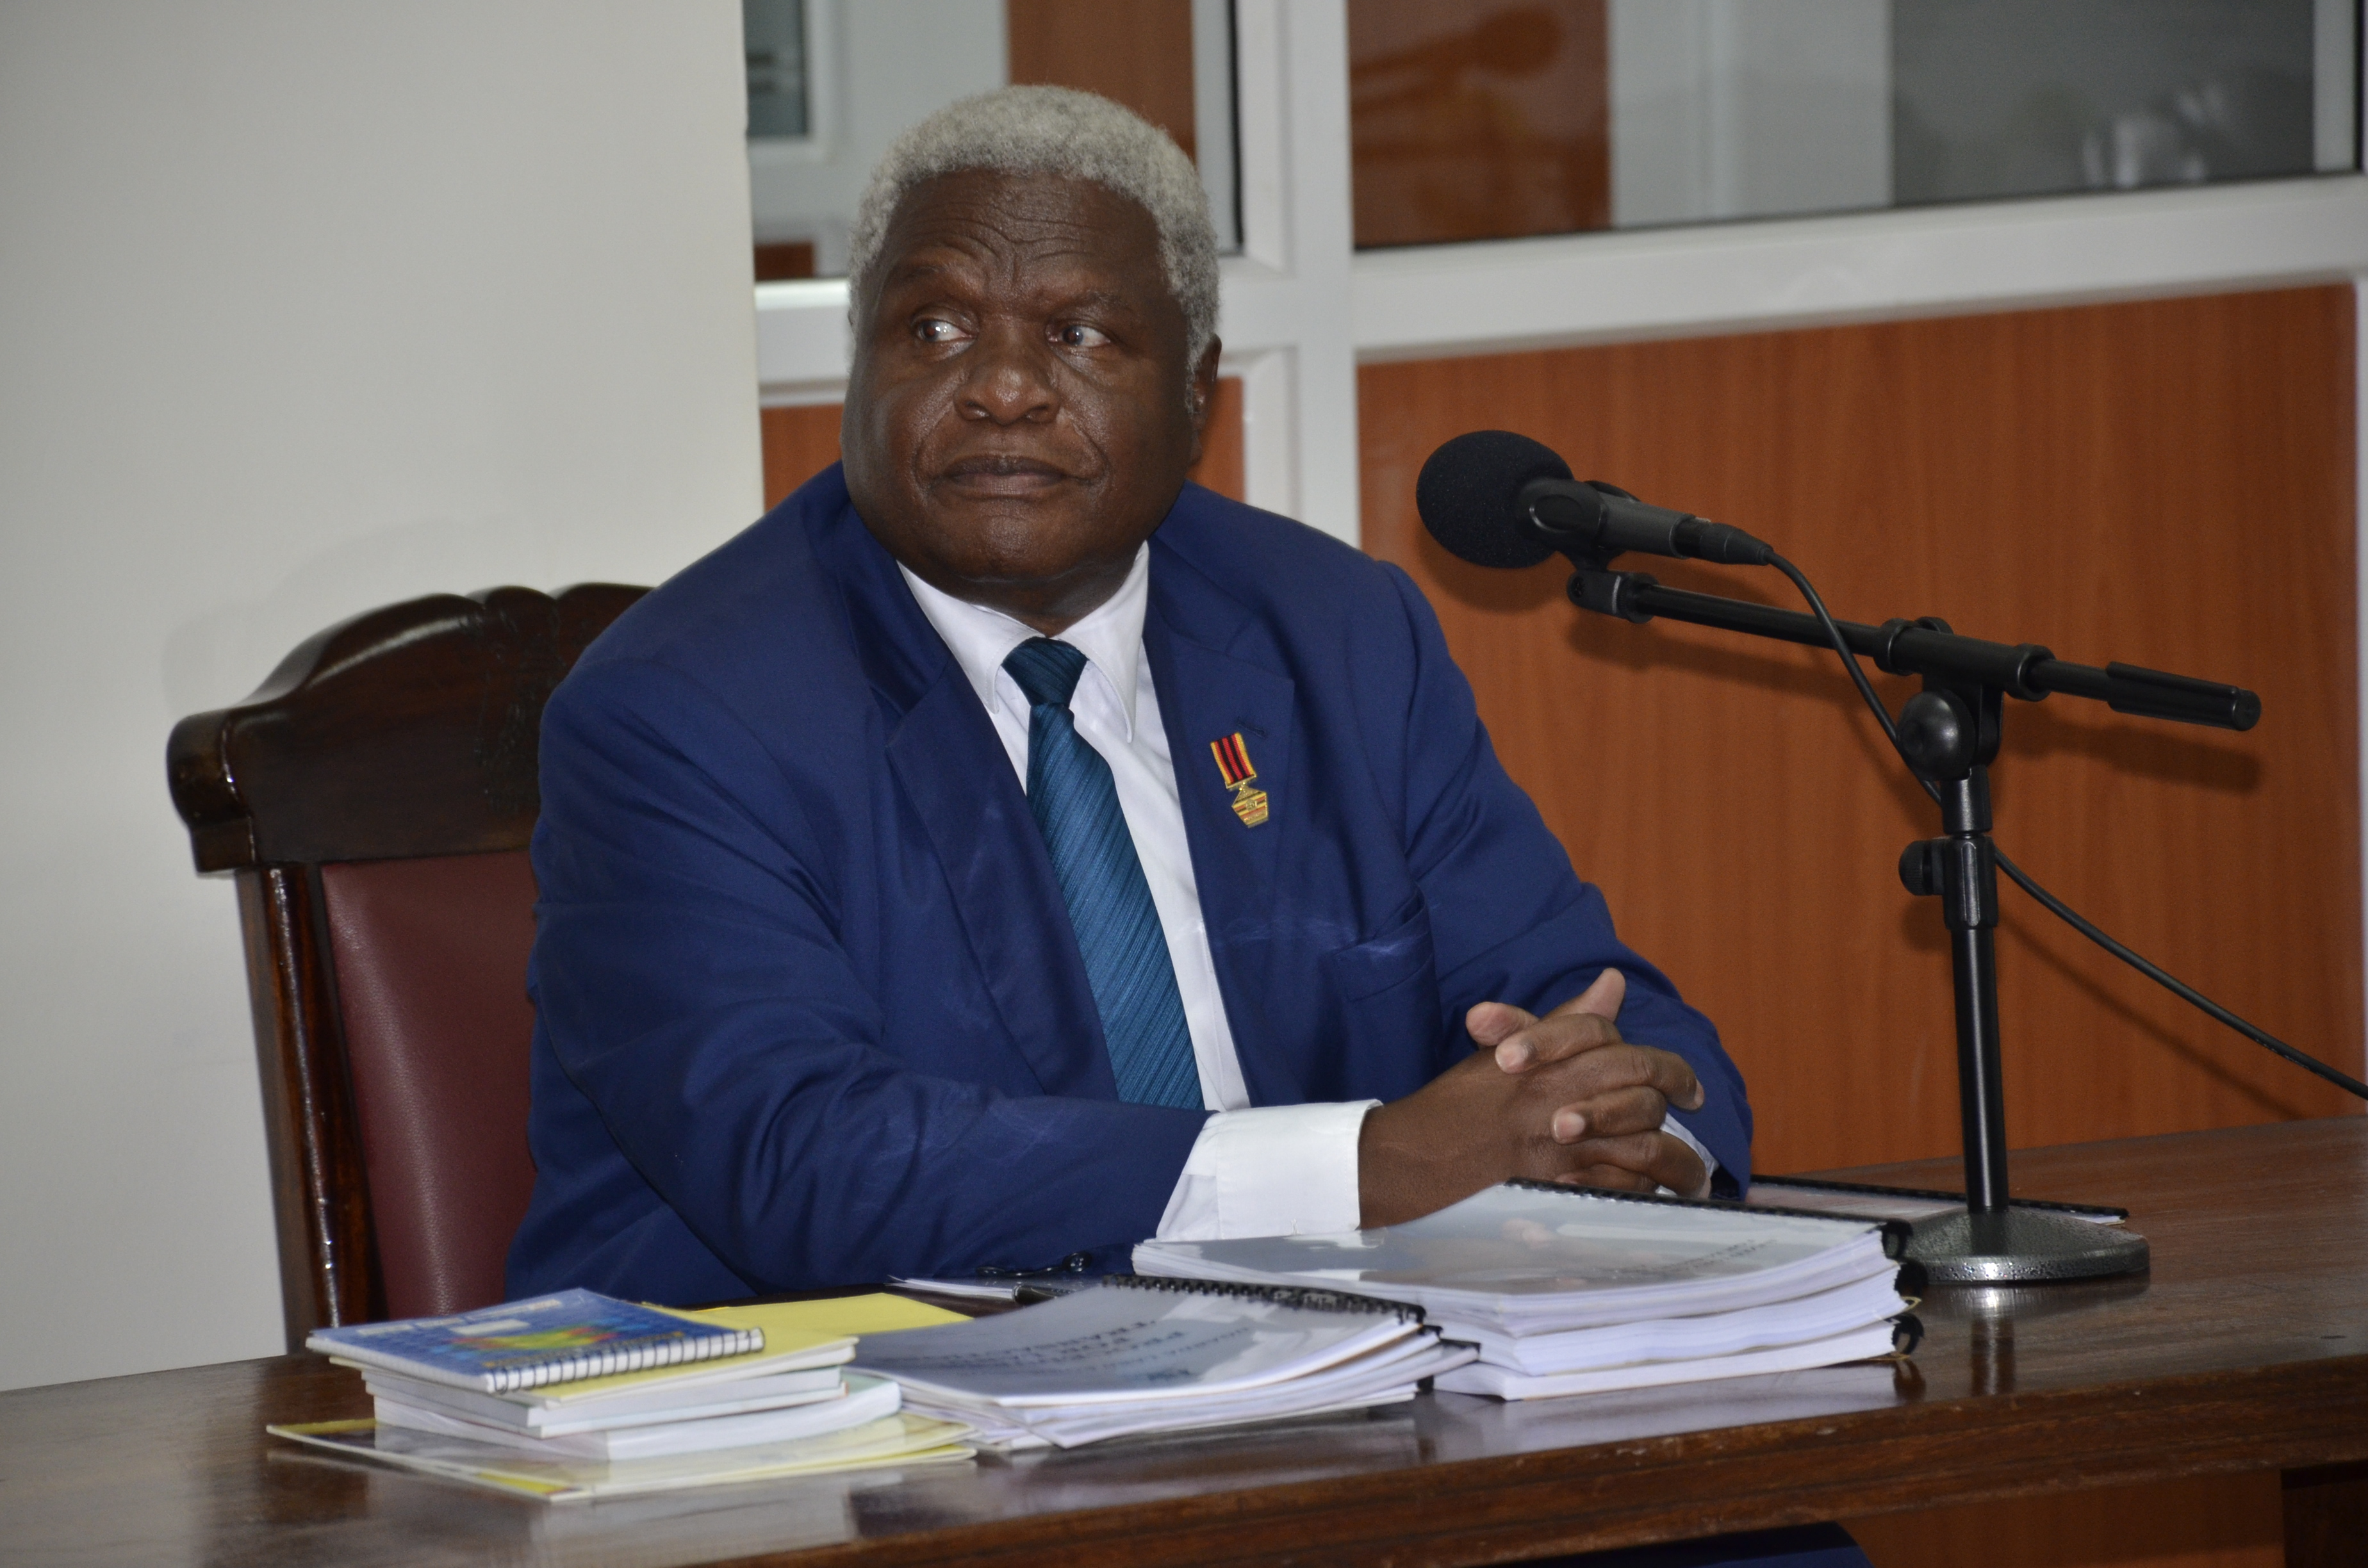 Uganda Land Commission Chairperson Honourable Baguma Isoke appearing before the Commission of Inquiry into land matters